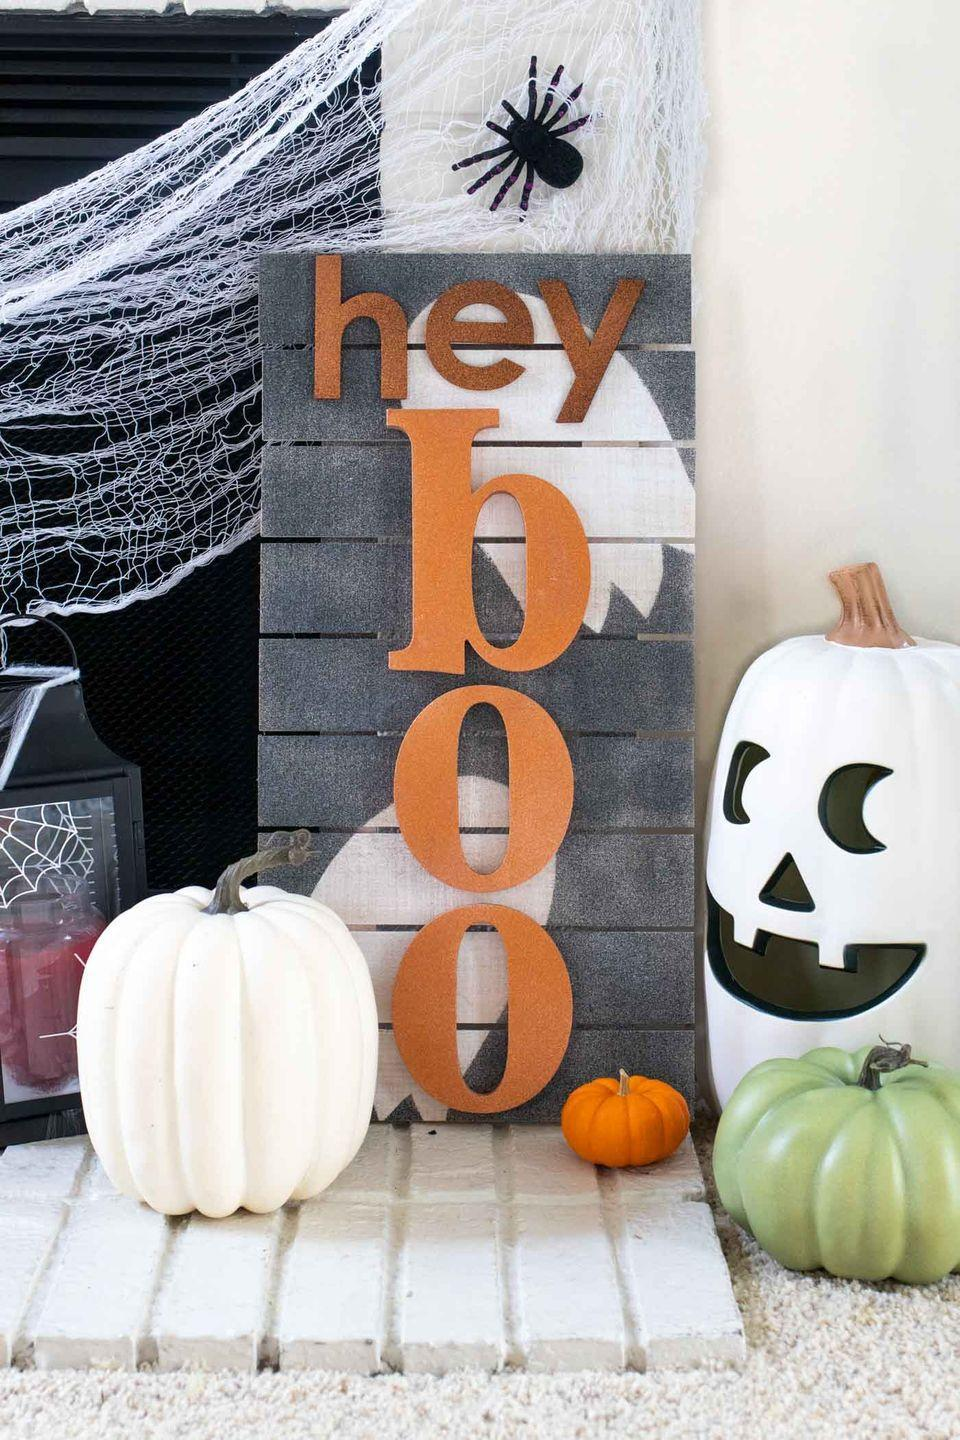 """<p>Customize a wooden sign to match your style and sense of humor. Pick your favorite Halloween pun — hey boo-tiful, for example — to outfit this timeless DIY. </p><p><em><a href=""""https://www.clubcrafted.com/punny-halloween-sign/"""" rel=""""nofollow noopener"""" target=""""_blank"""" data-ylk=""""slk:Get the tutorial at Club Crafted »"""" class=""""link rapid-noclick-resp"""">Get the tutorial at Club Crafted »</a></em></p>"""